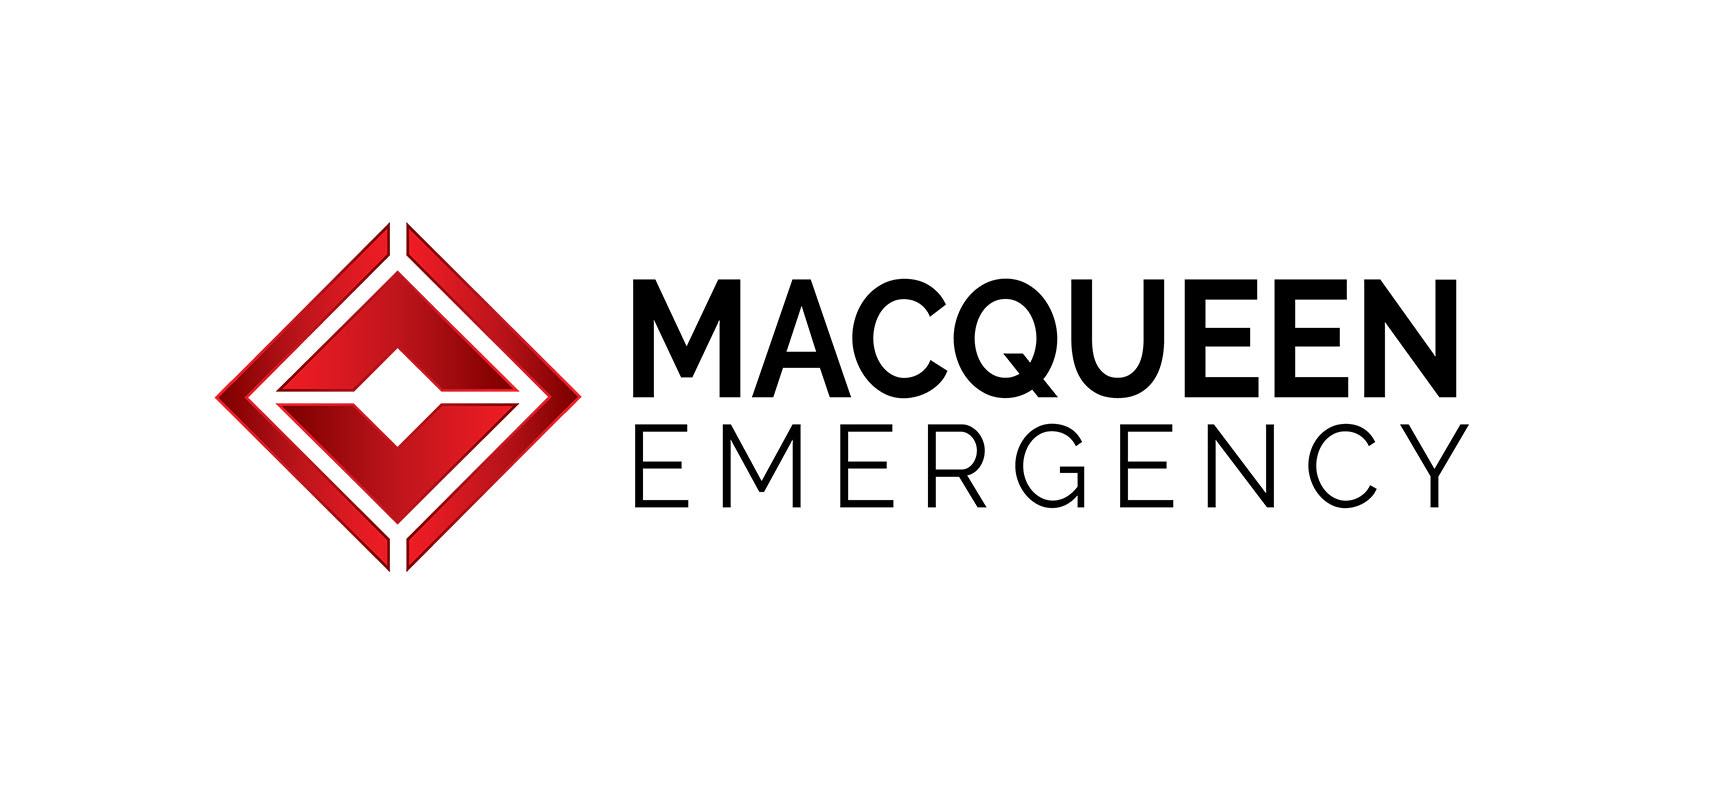 Global Emergency Products has been acquired and is now operating as MacQueen Emergency